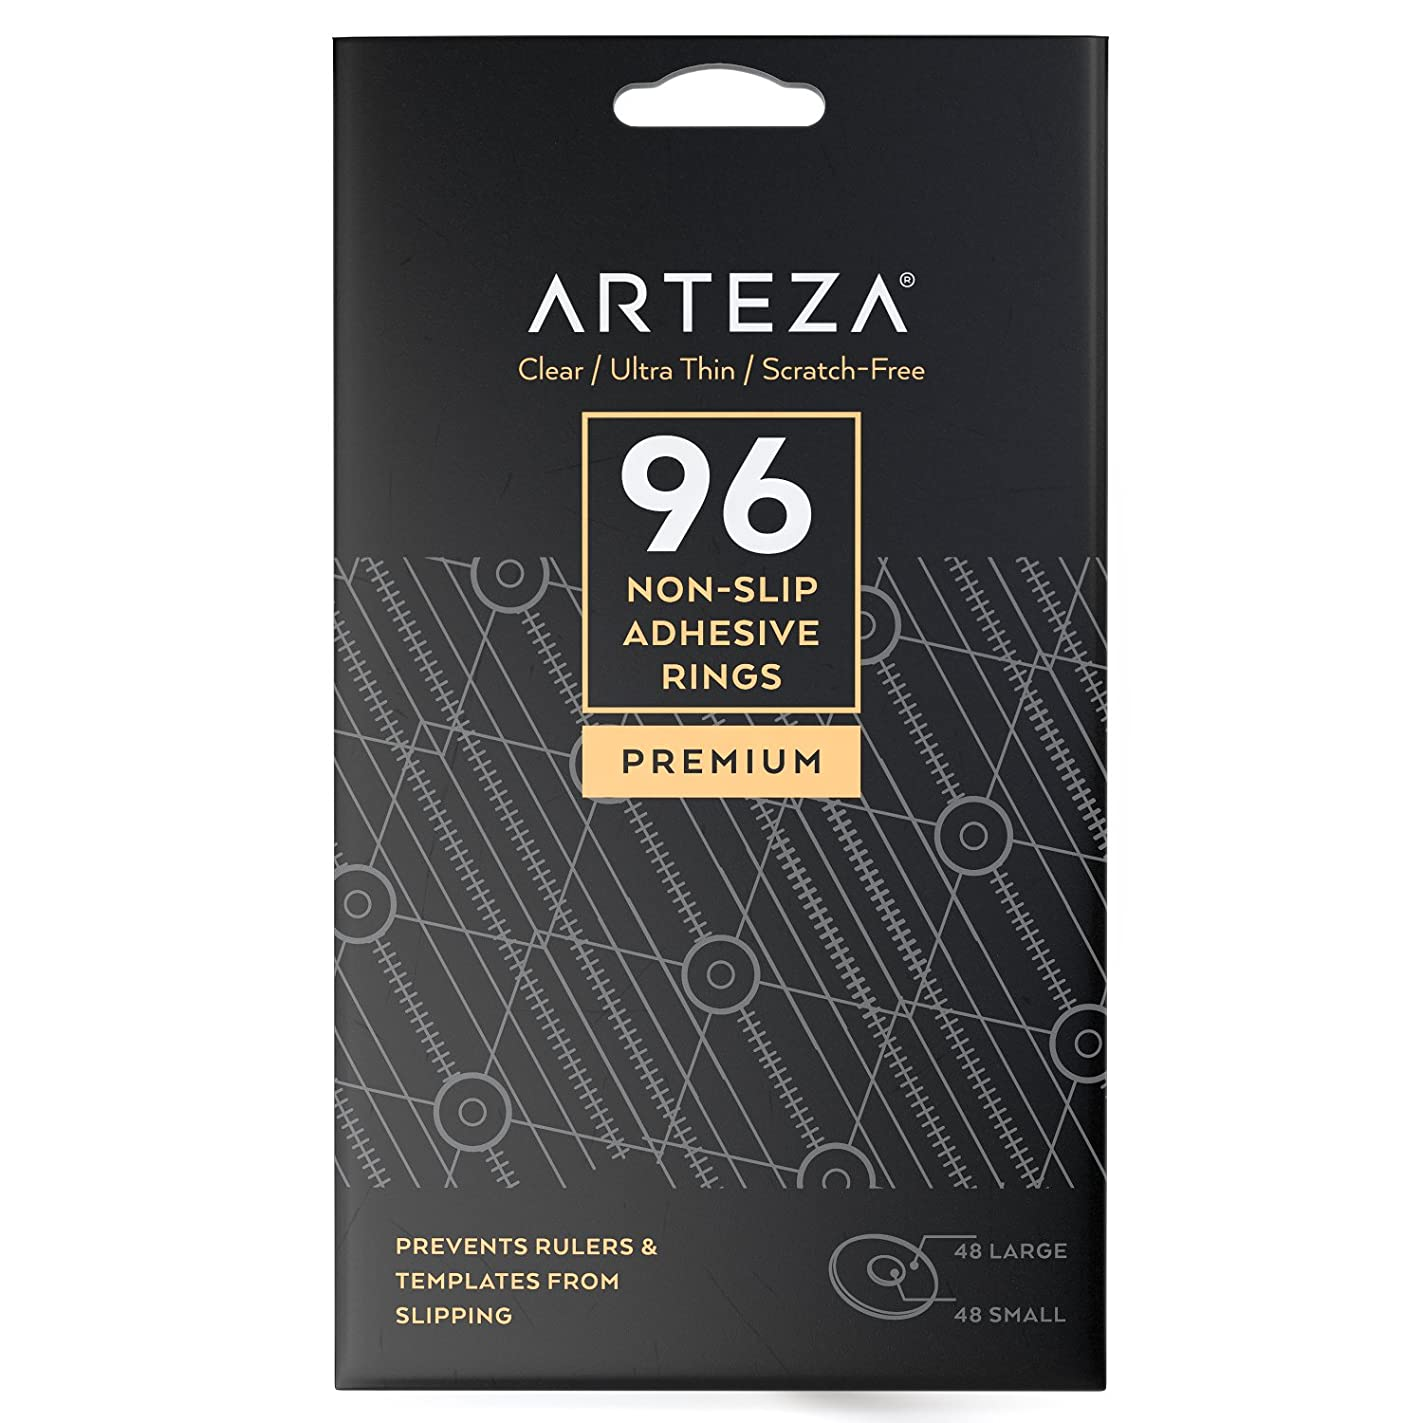 ARTEZA Non Slip Adhesive Glass Rings - Rubber Pads - (Set of 96) irx14244425